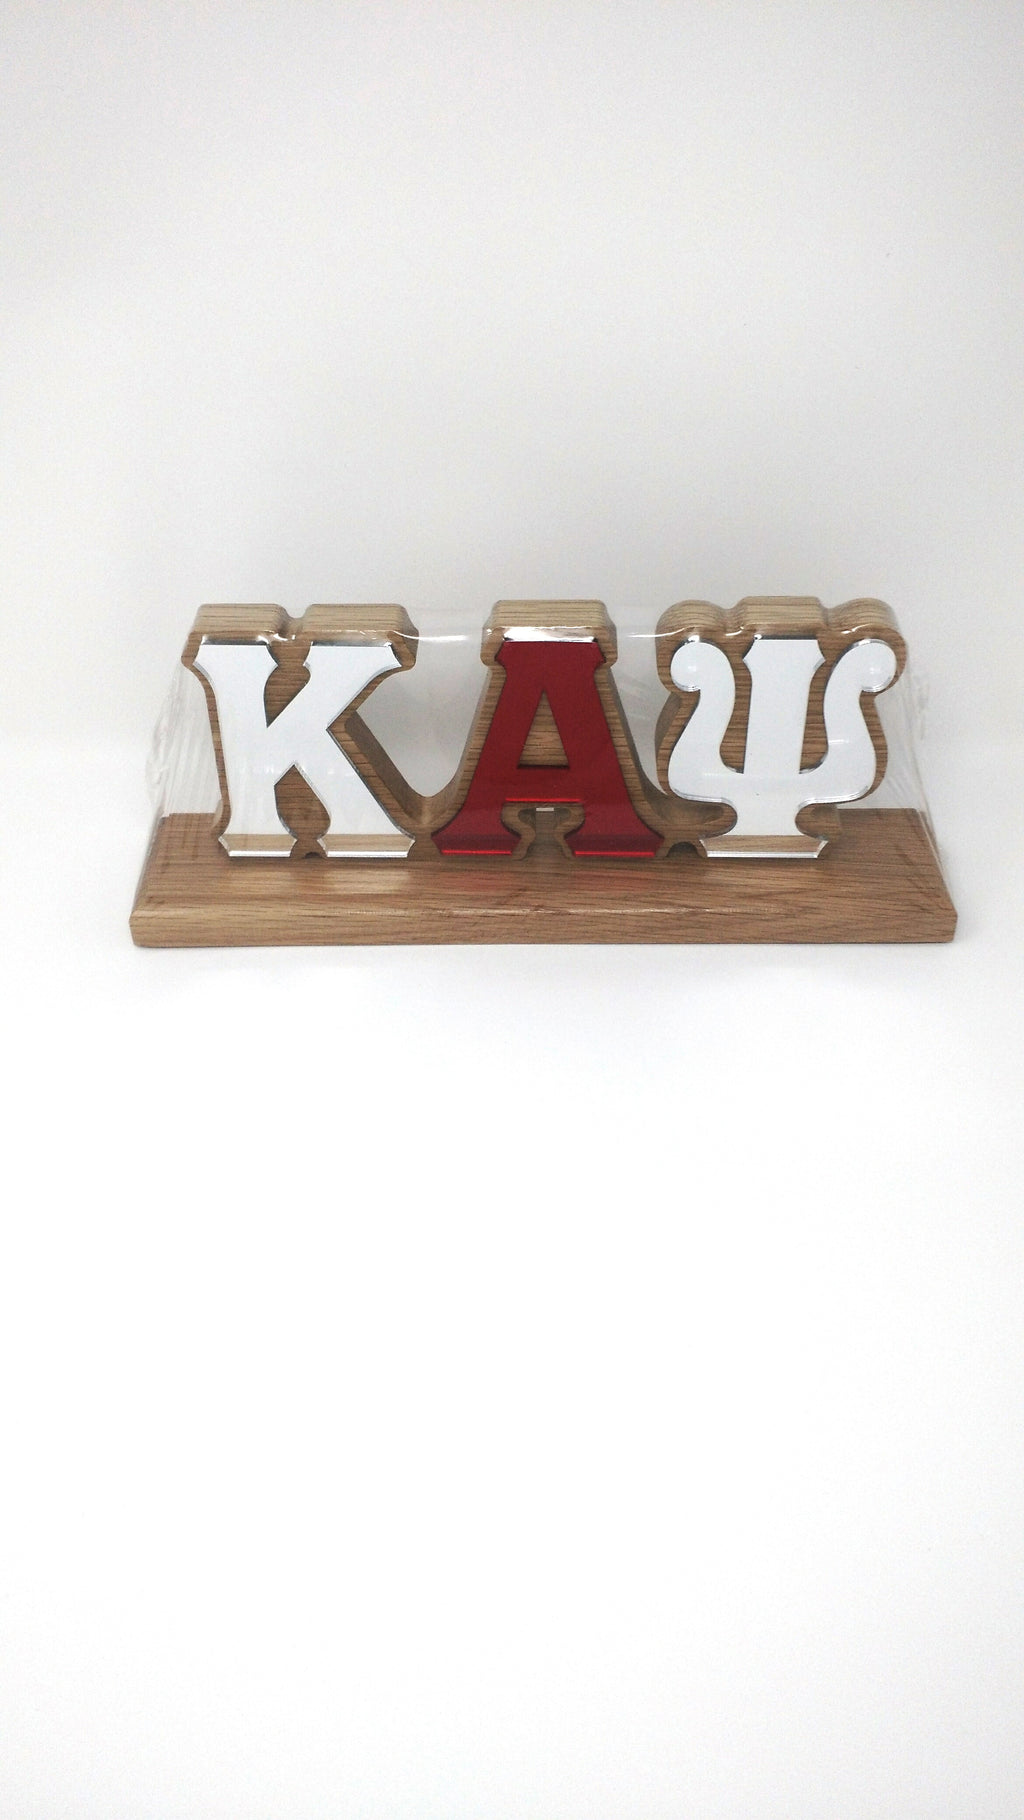 Kappa Alpha Psi Wood Desk Top Letters